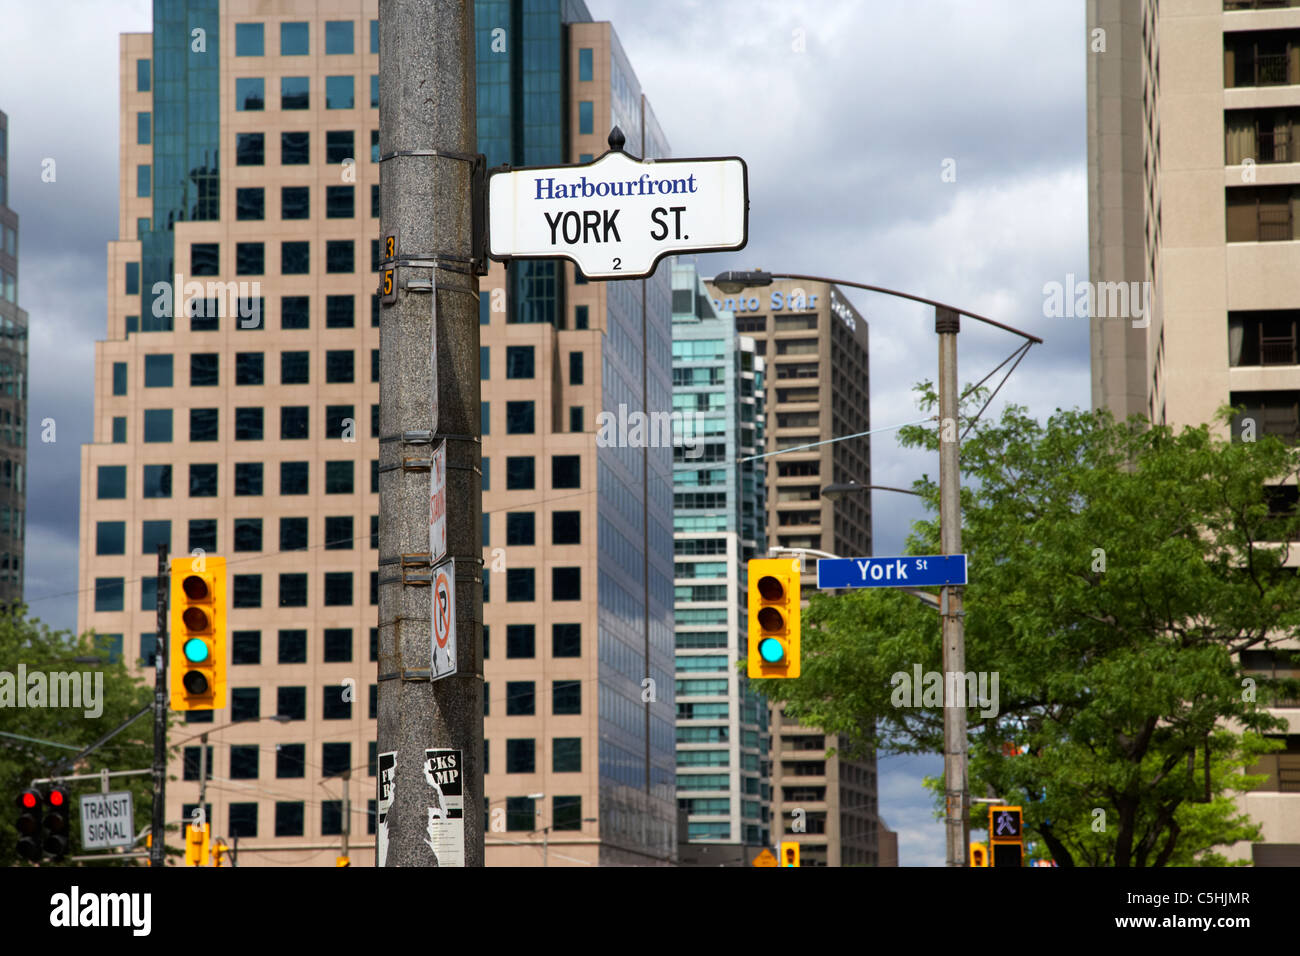 york street and queens quay west harbourfront toronto ontario canada - Stock Image